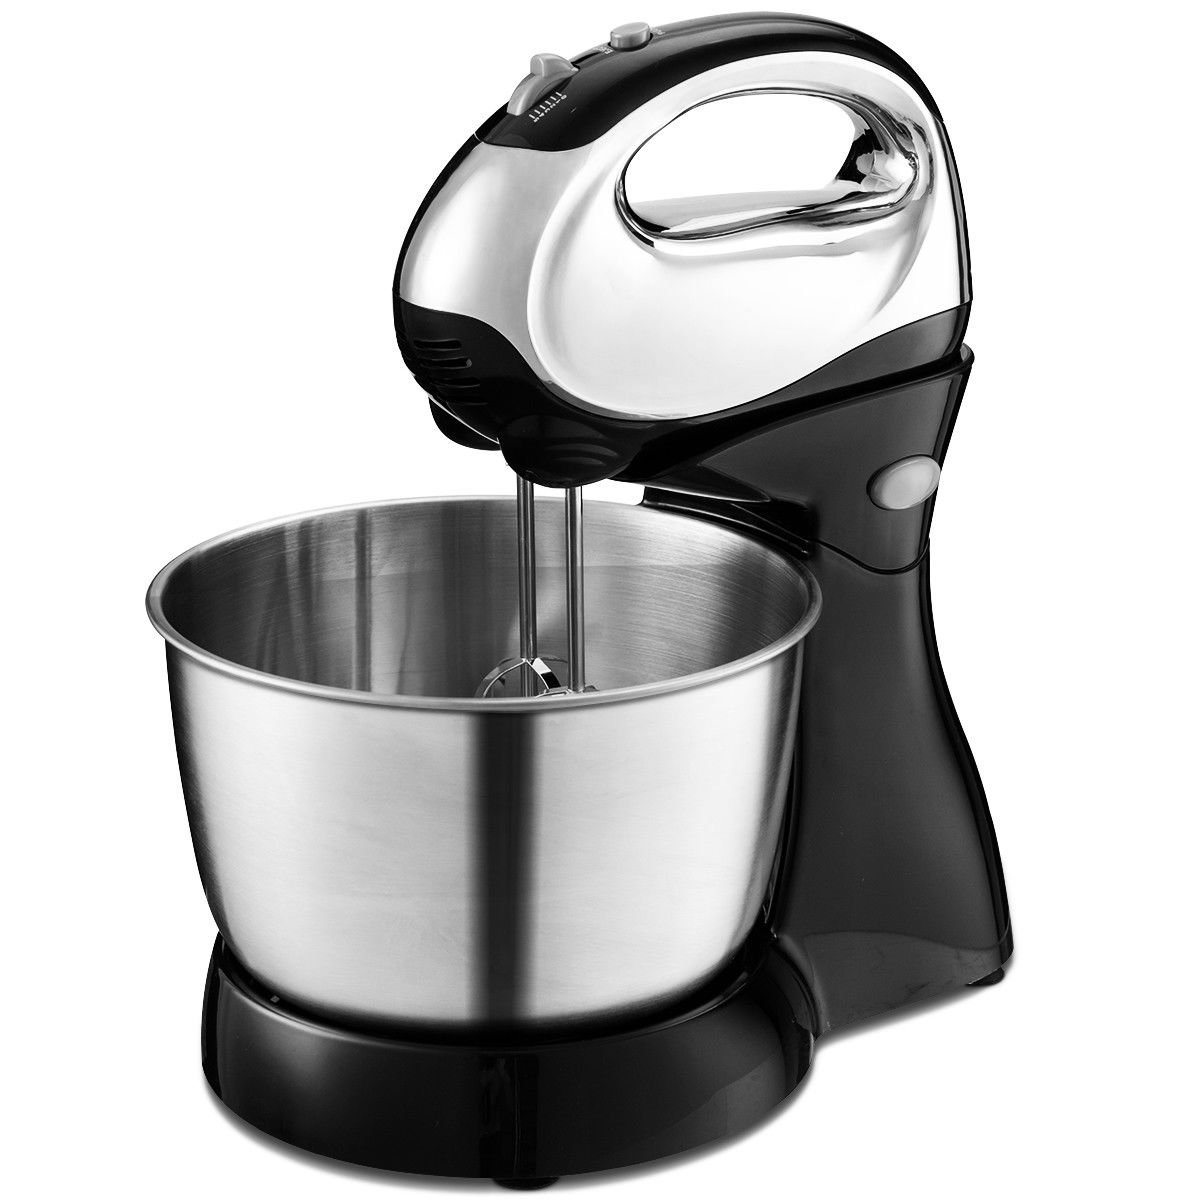 Costway 200W Stand Mixer, 5-Speed Stand Mixer and Hand Mixer with Stainless Steel Mixing Bowl, Dough Hooks & Beaters Stainless Steel Bowl (Black)